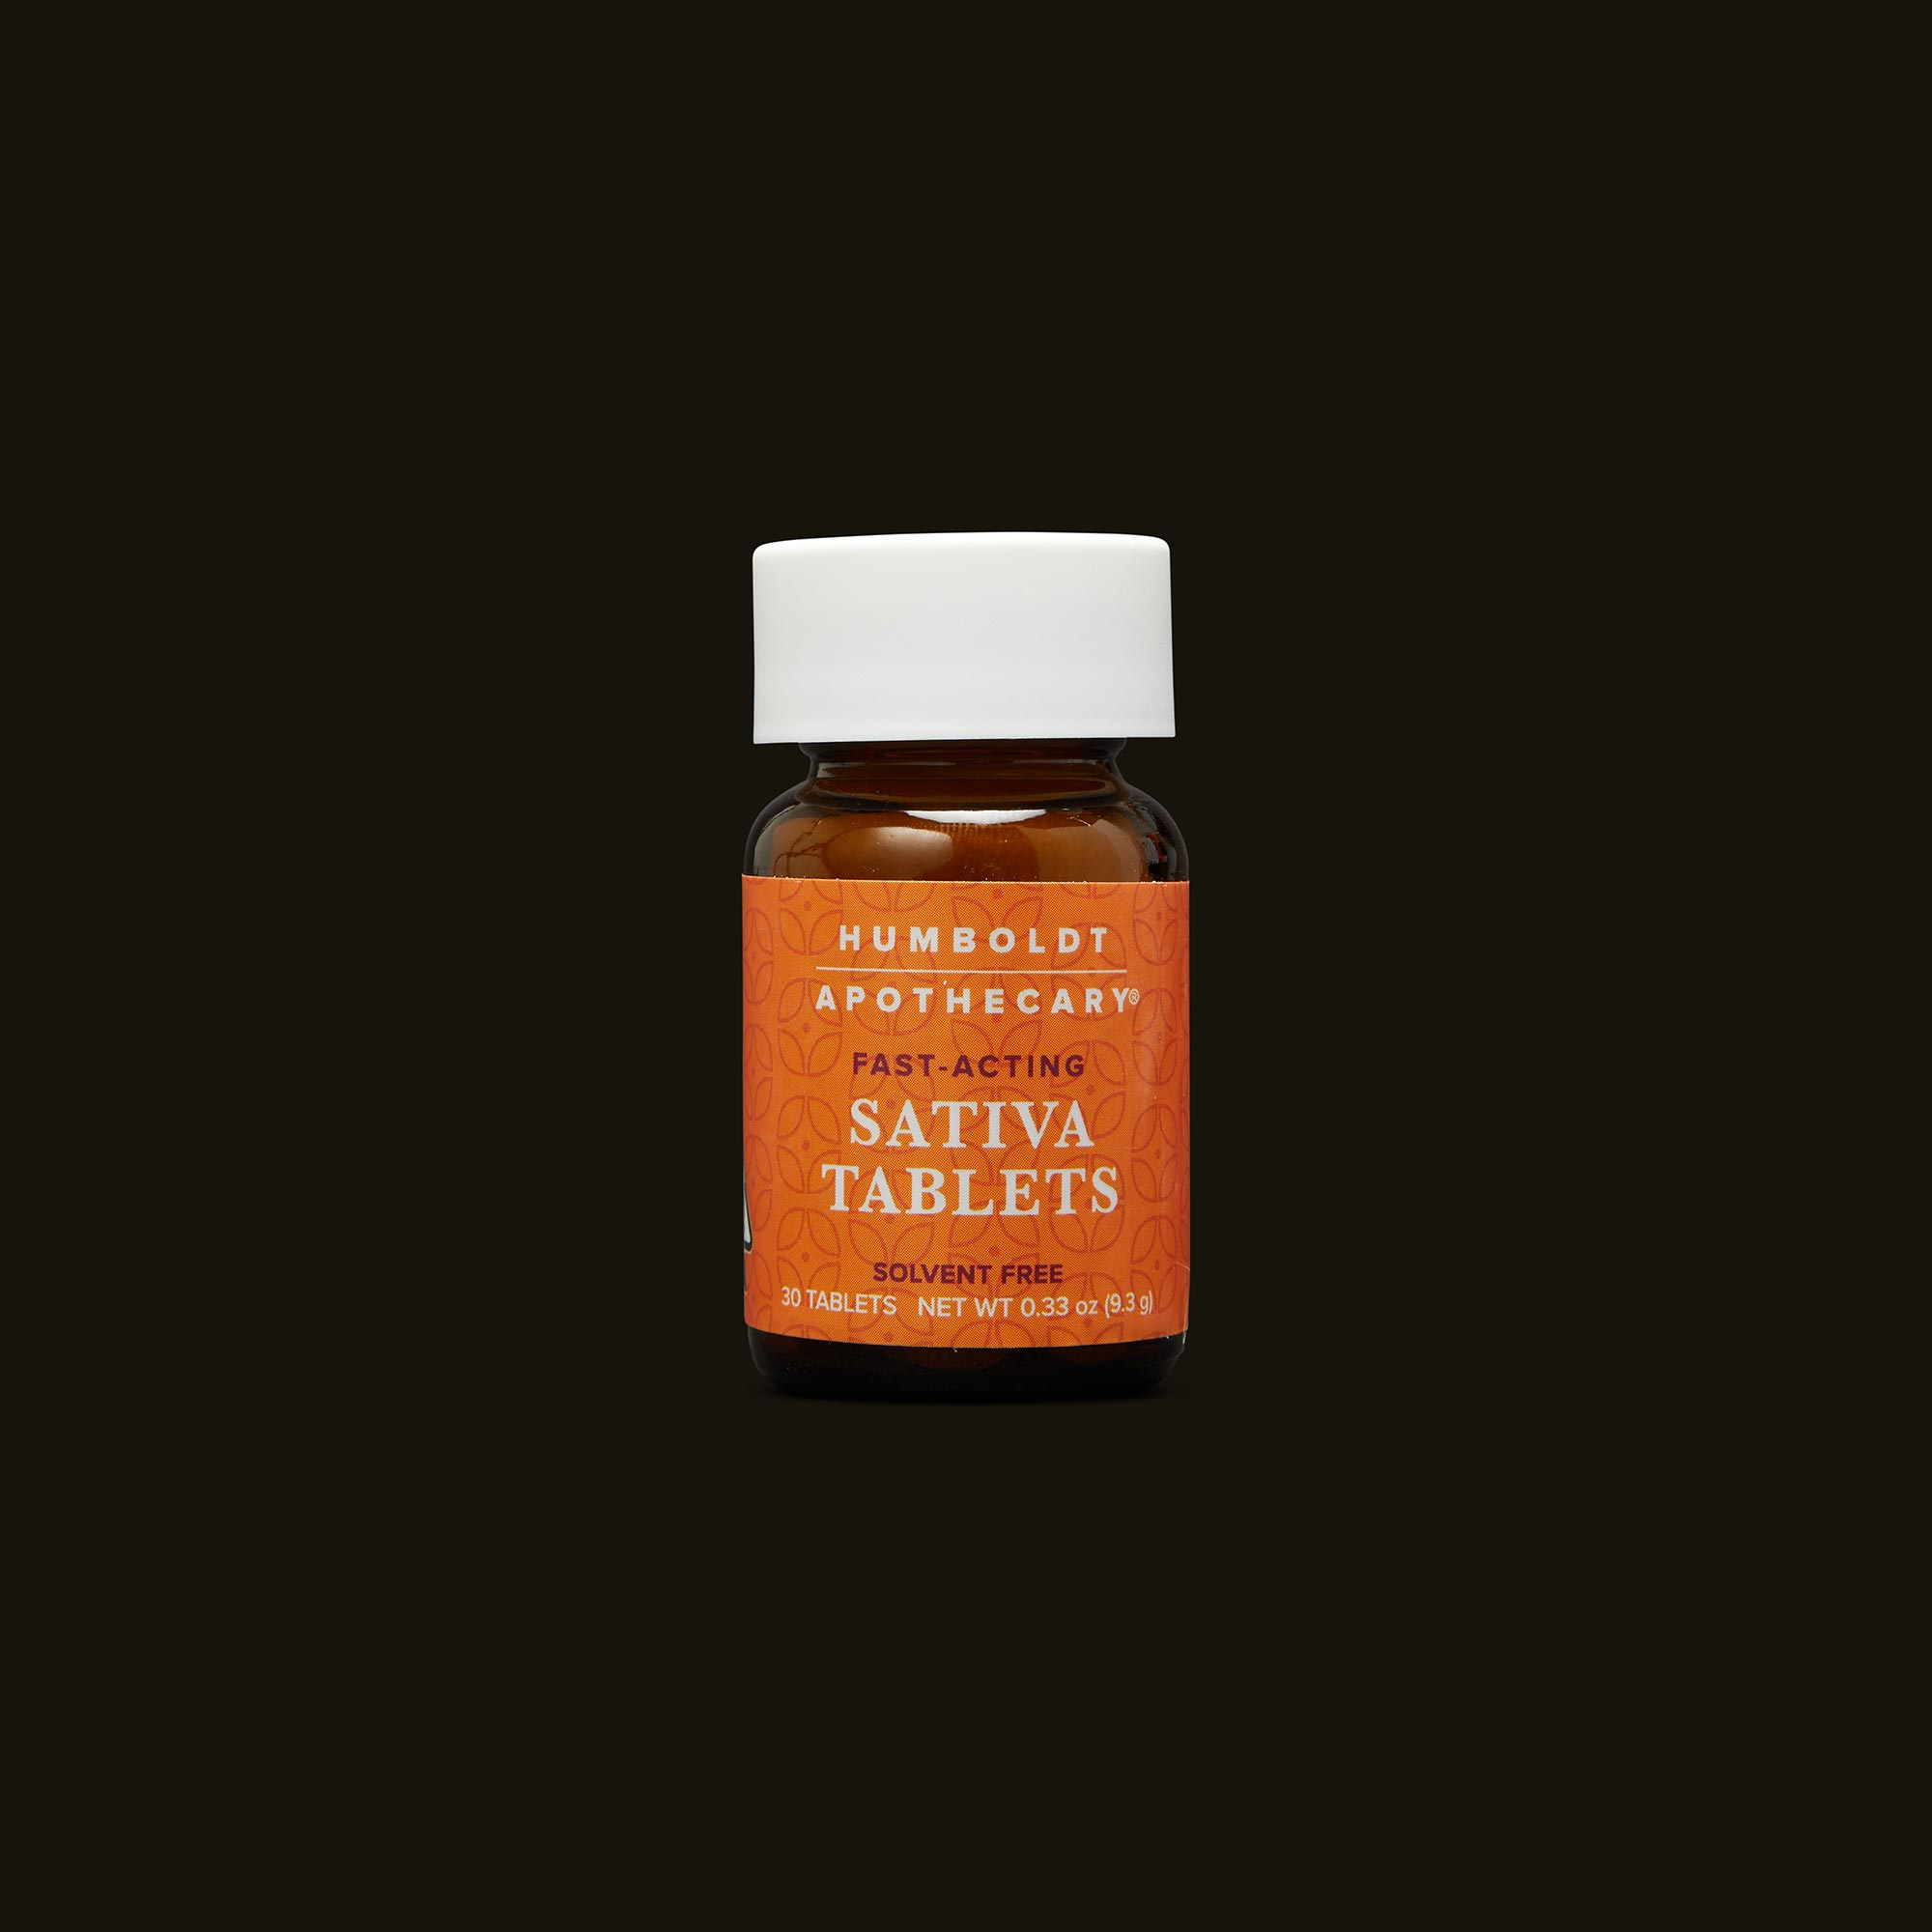 Humboldt Apothecary Sativa Tablets Bottle